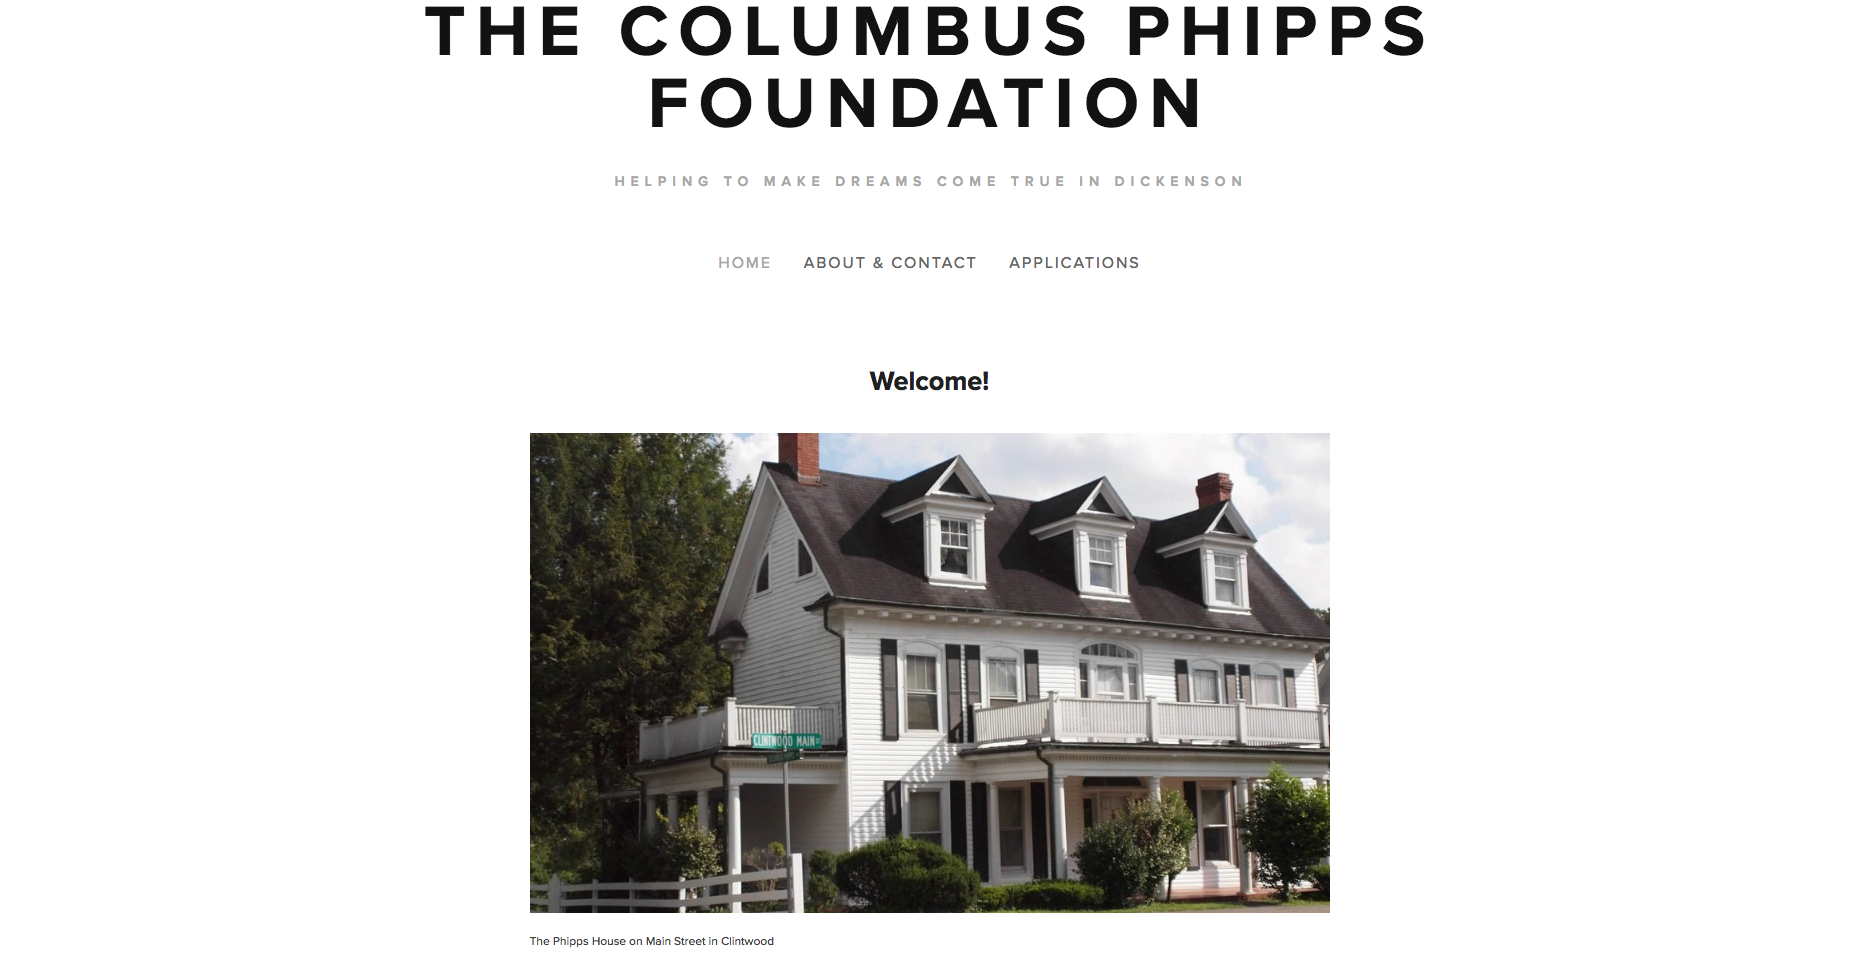 The Columbus Phipps Foundation